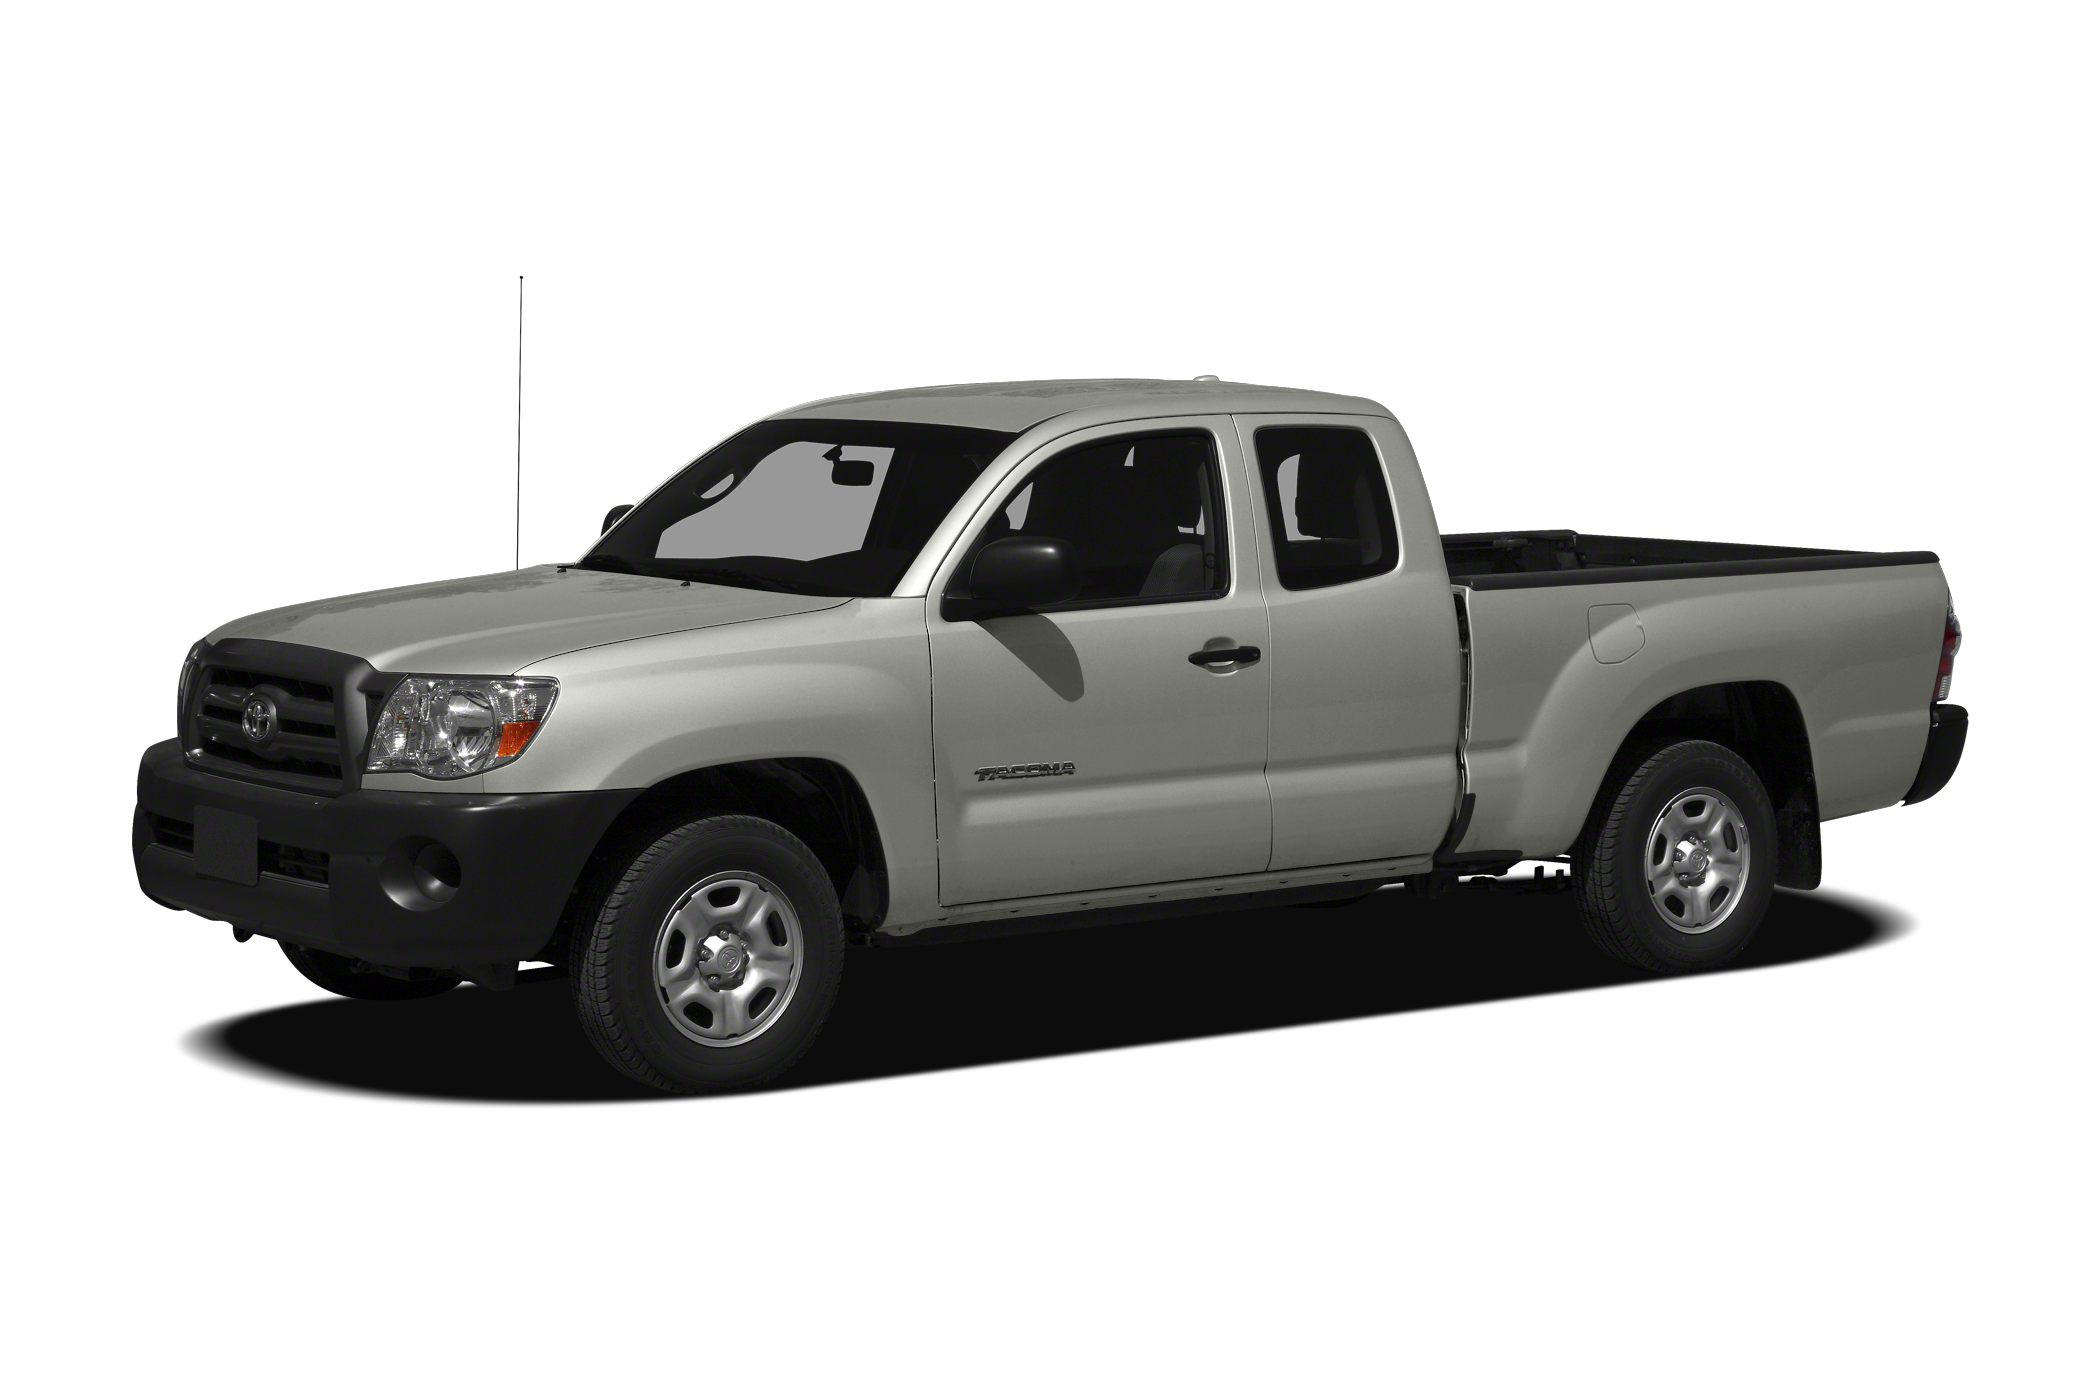 2011 Toyota Tacoma PreRunner Crew Cab Pickup for sale in Seattle for $21,995 with 105,912 miles.